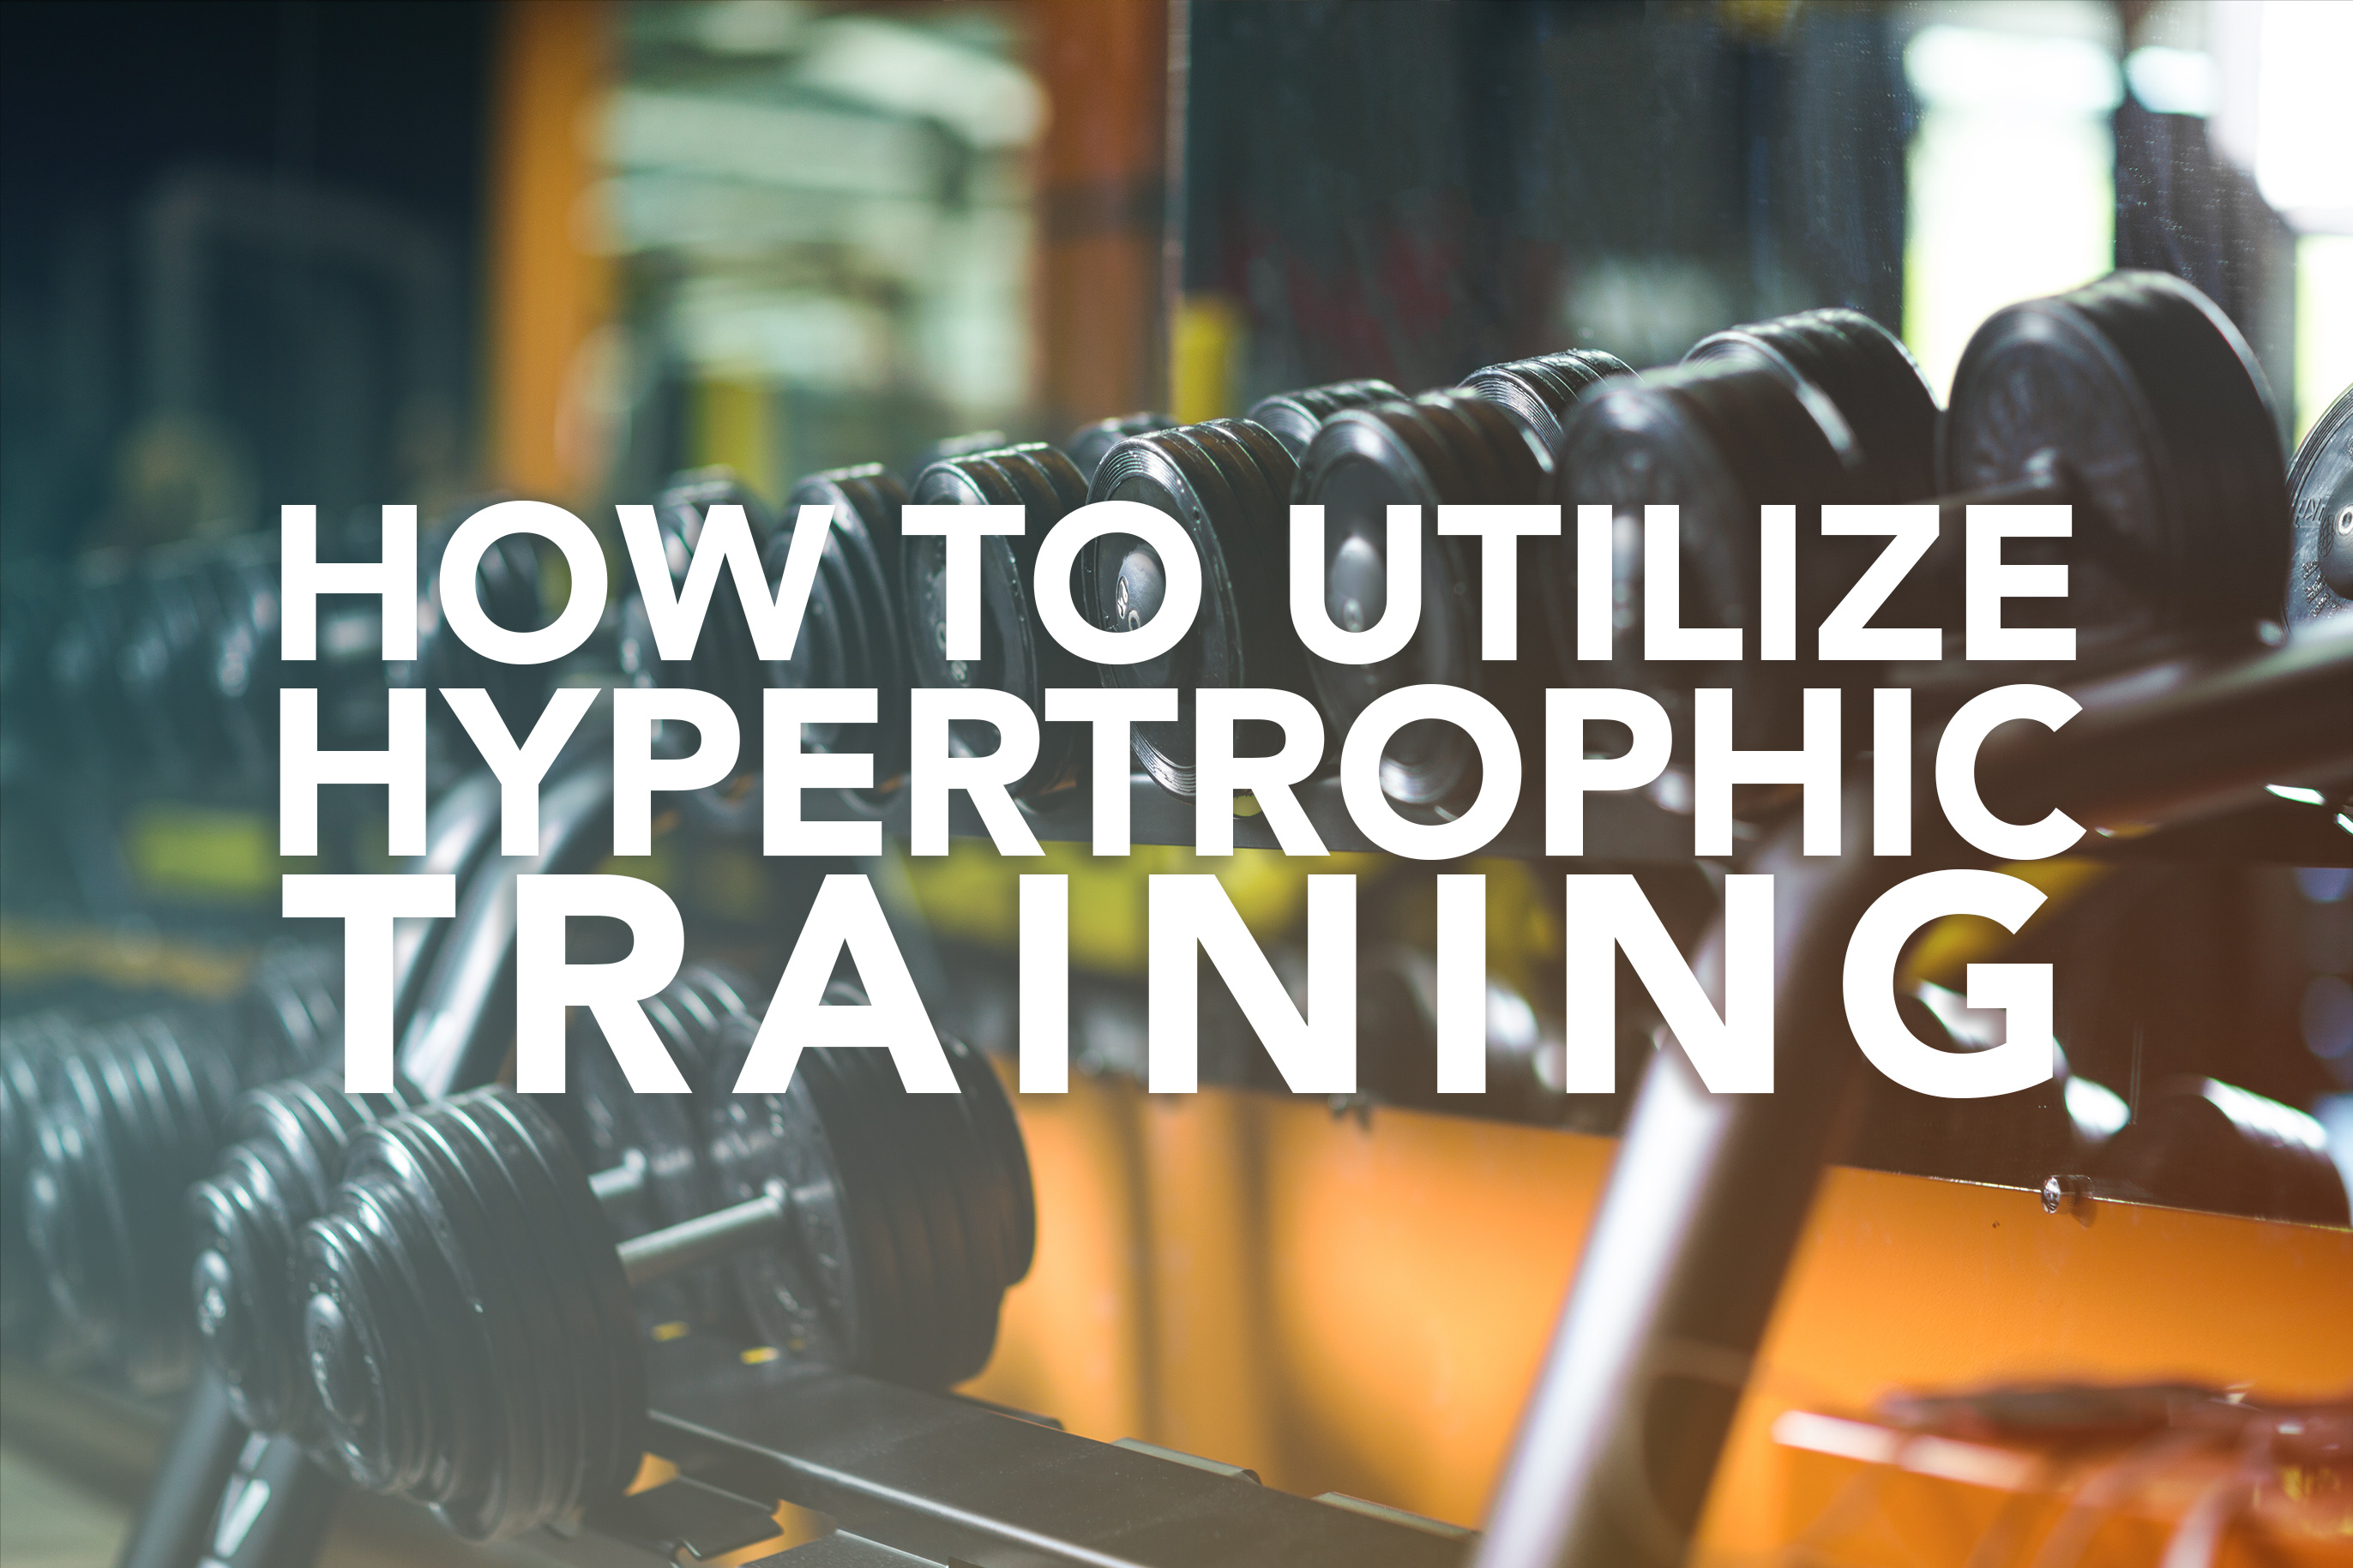 How to Utilize Hypertrophic Training